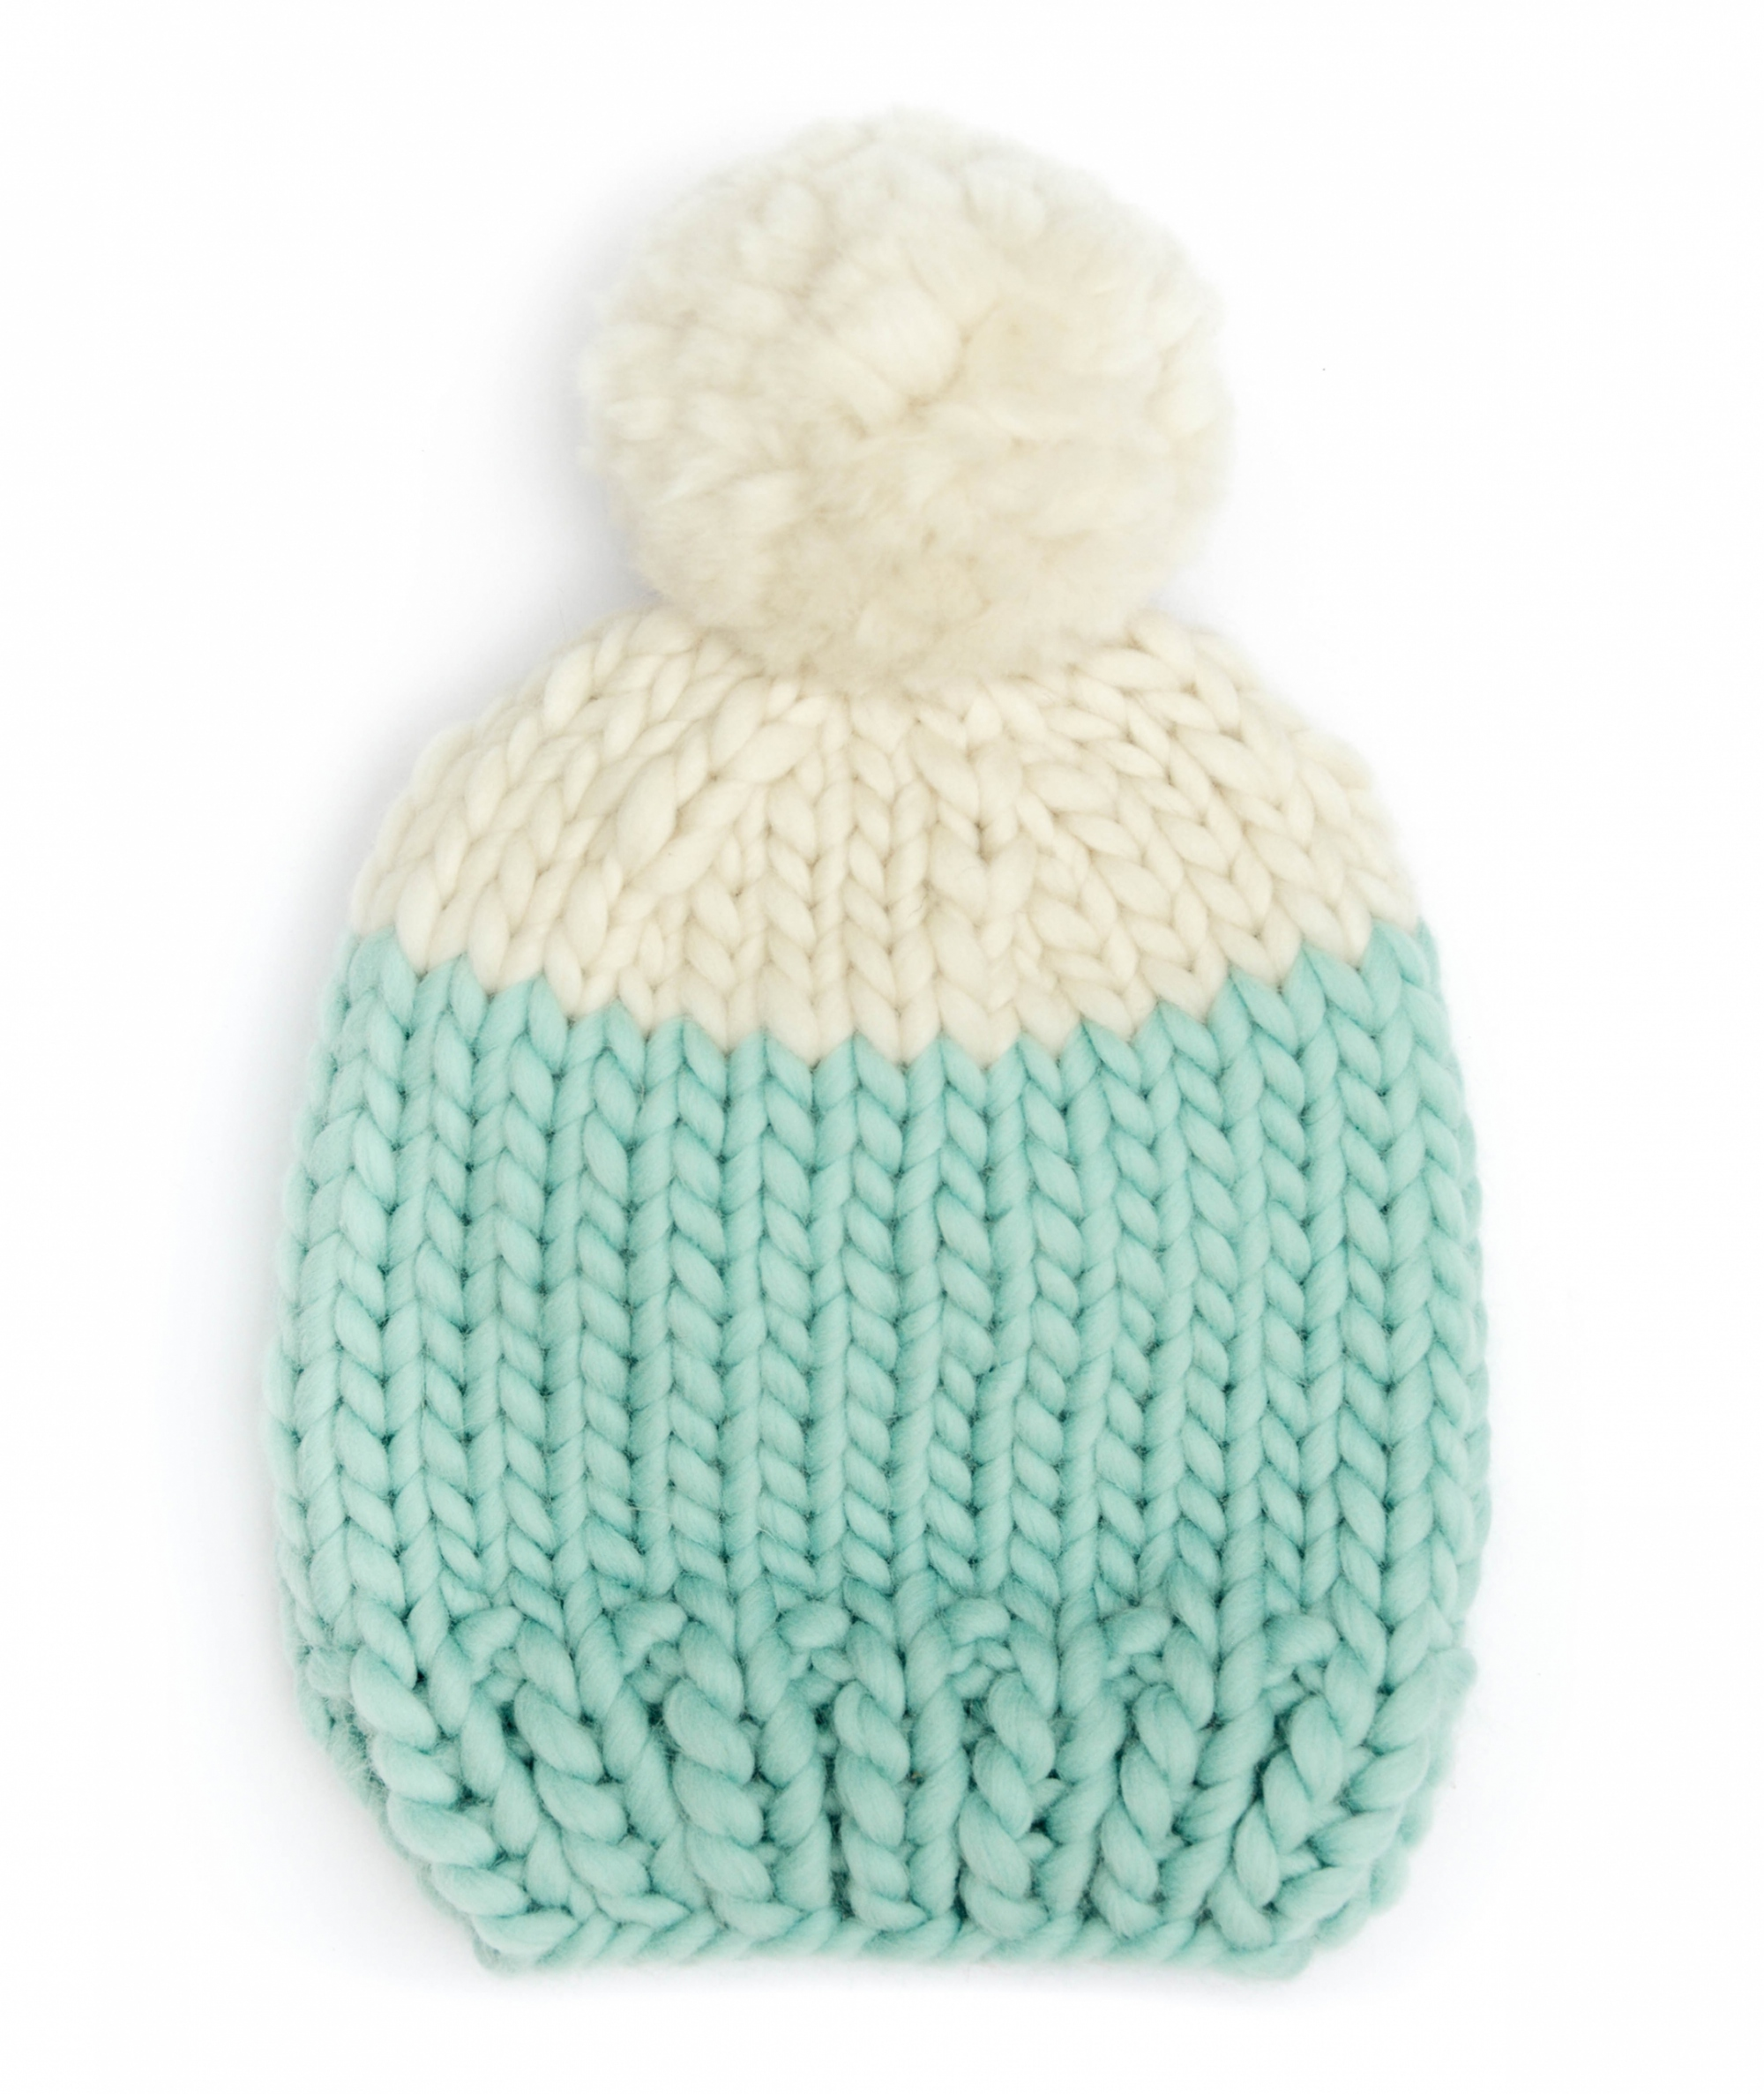 Handmade wool hats - Aqua and Ivory block colour bobble hat with Ivory pom pom. Click to customise.